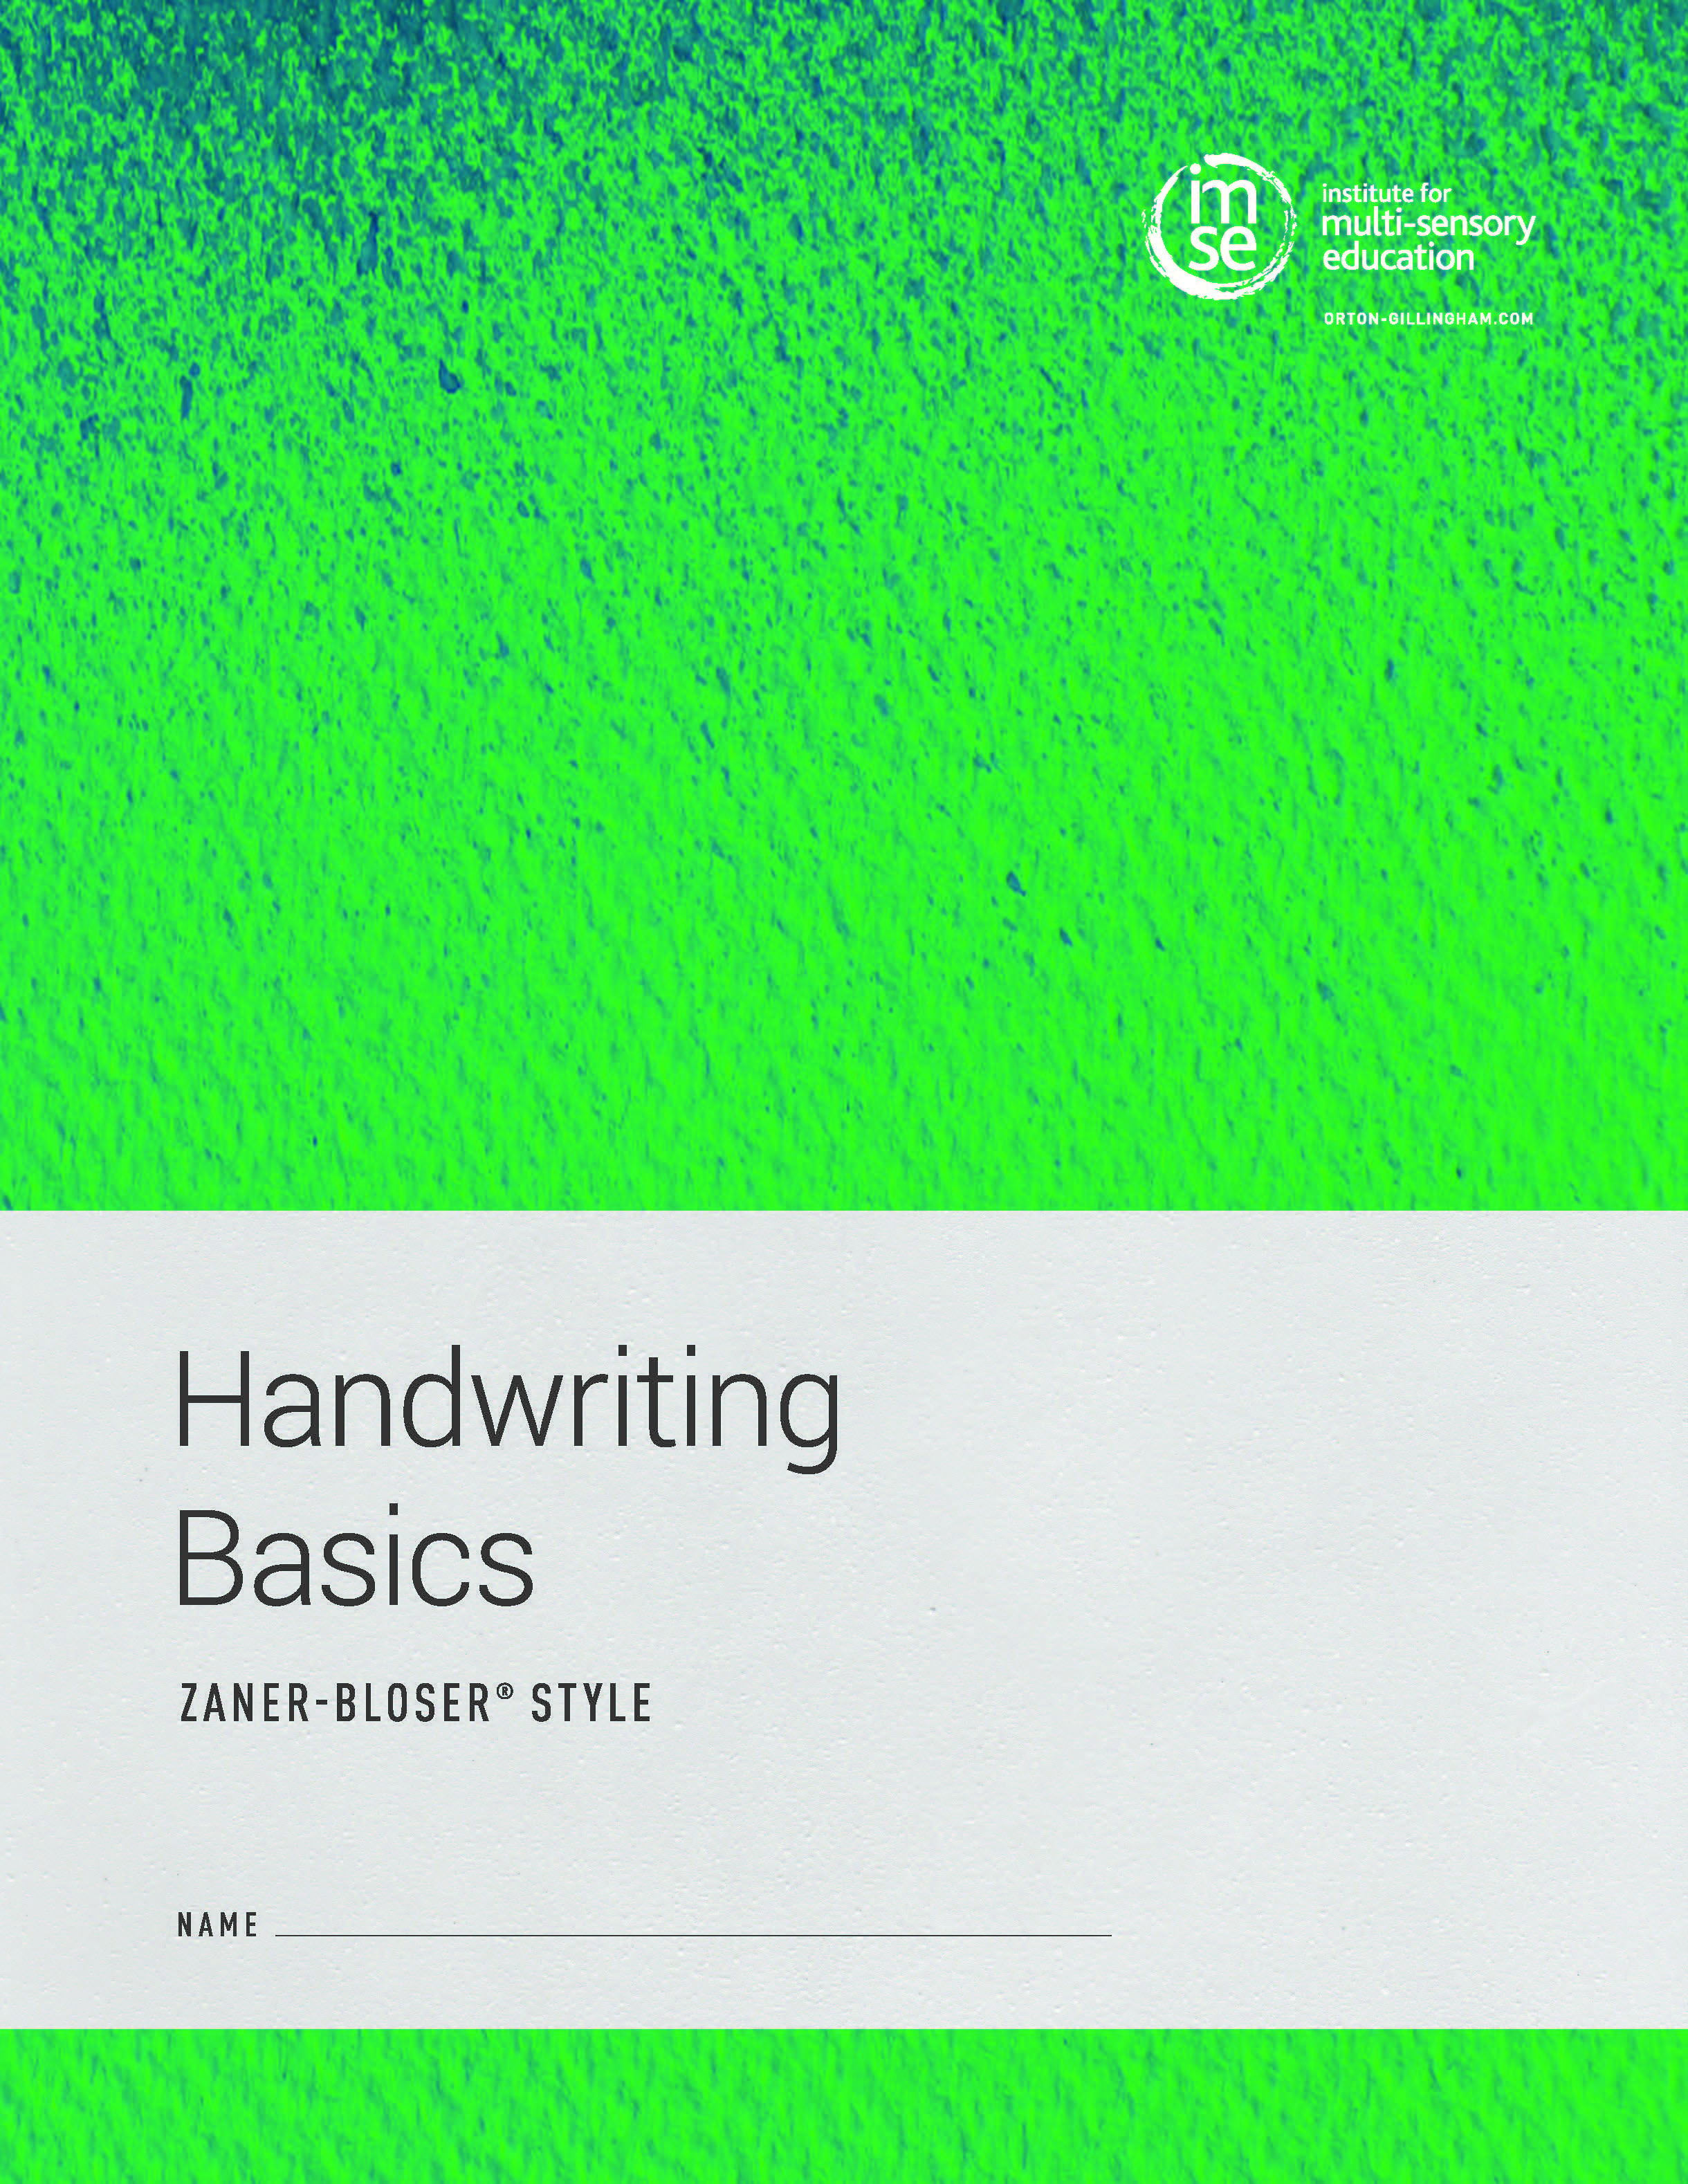 Handwriting Basics Zaner-Bloser